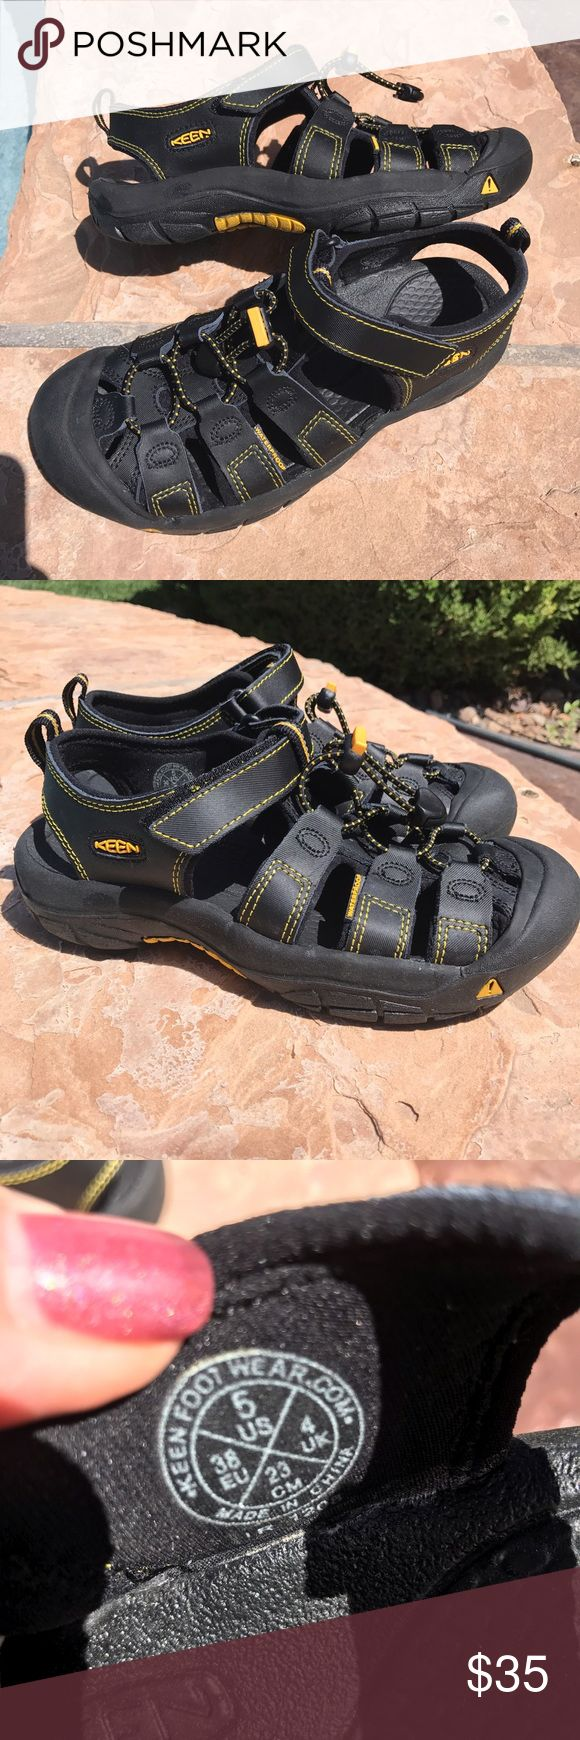 Sandals or shoes for hiking - Keen Waterproof Hiking Sandals Men 5